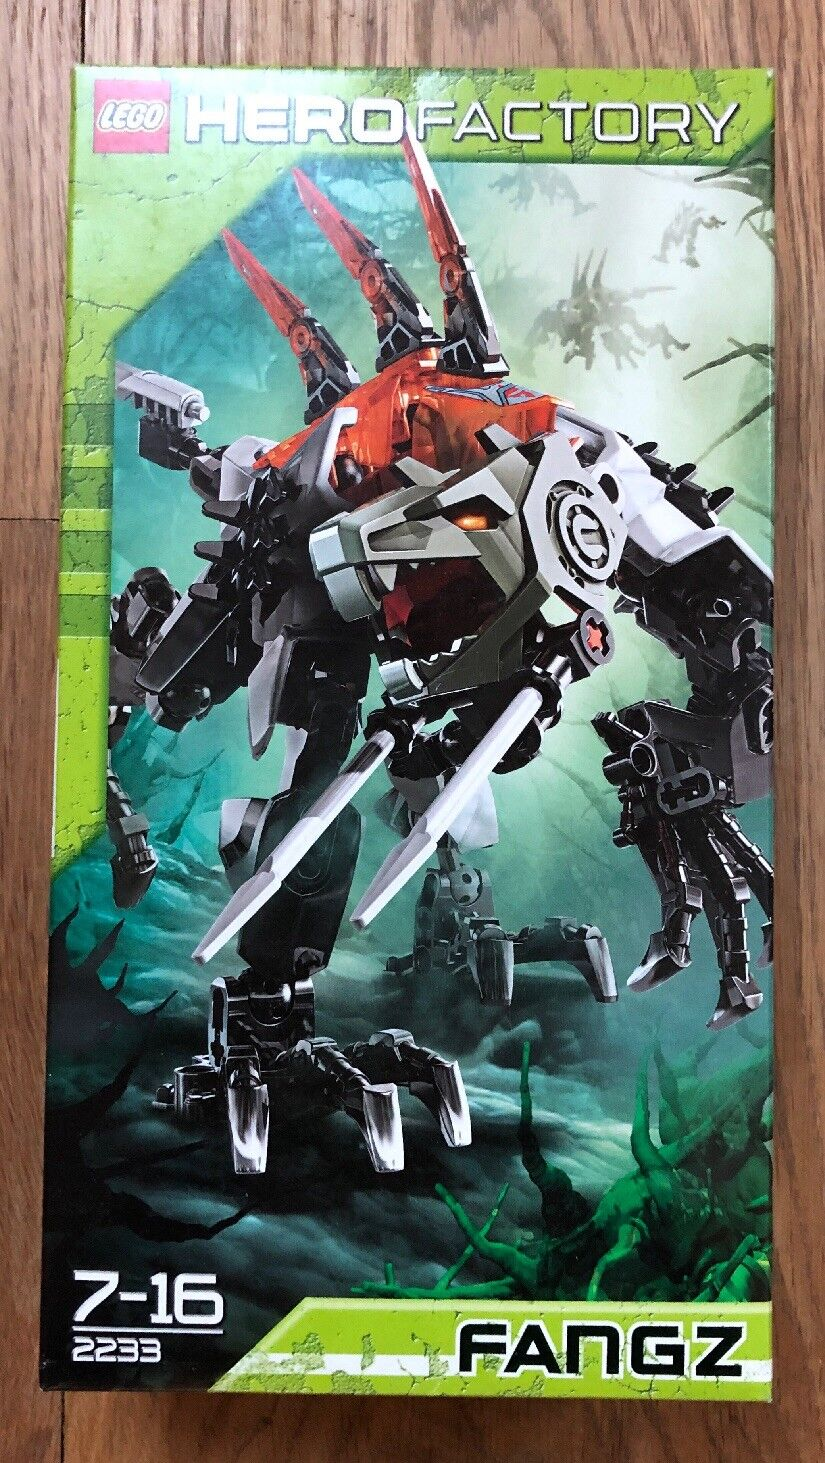 LEGO HERO FACTORY 2233 FANGZ   RARE   BRAND NEW BOXED & SEALED